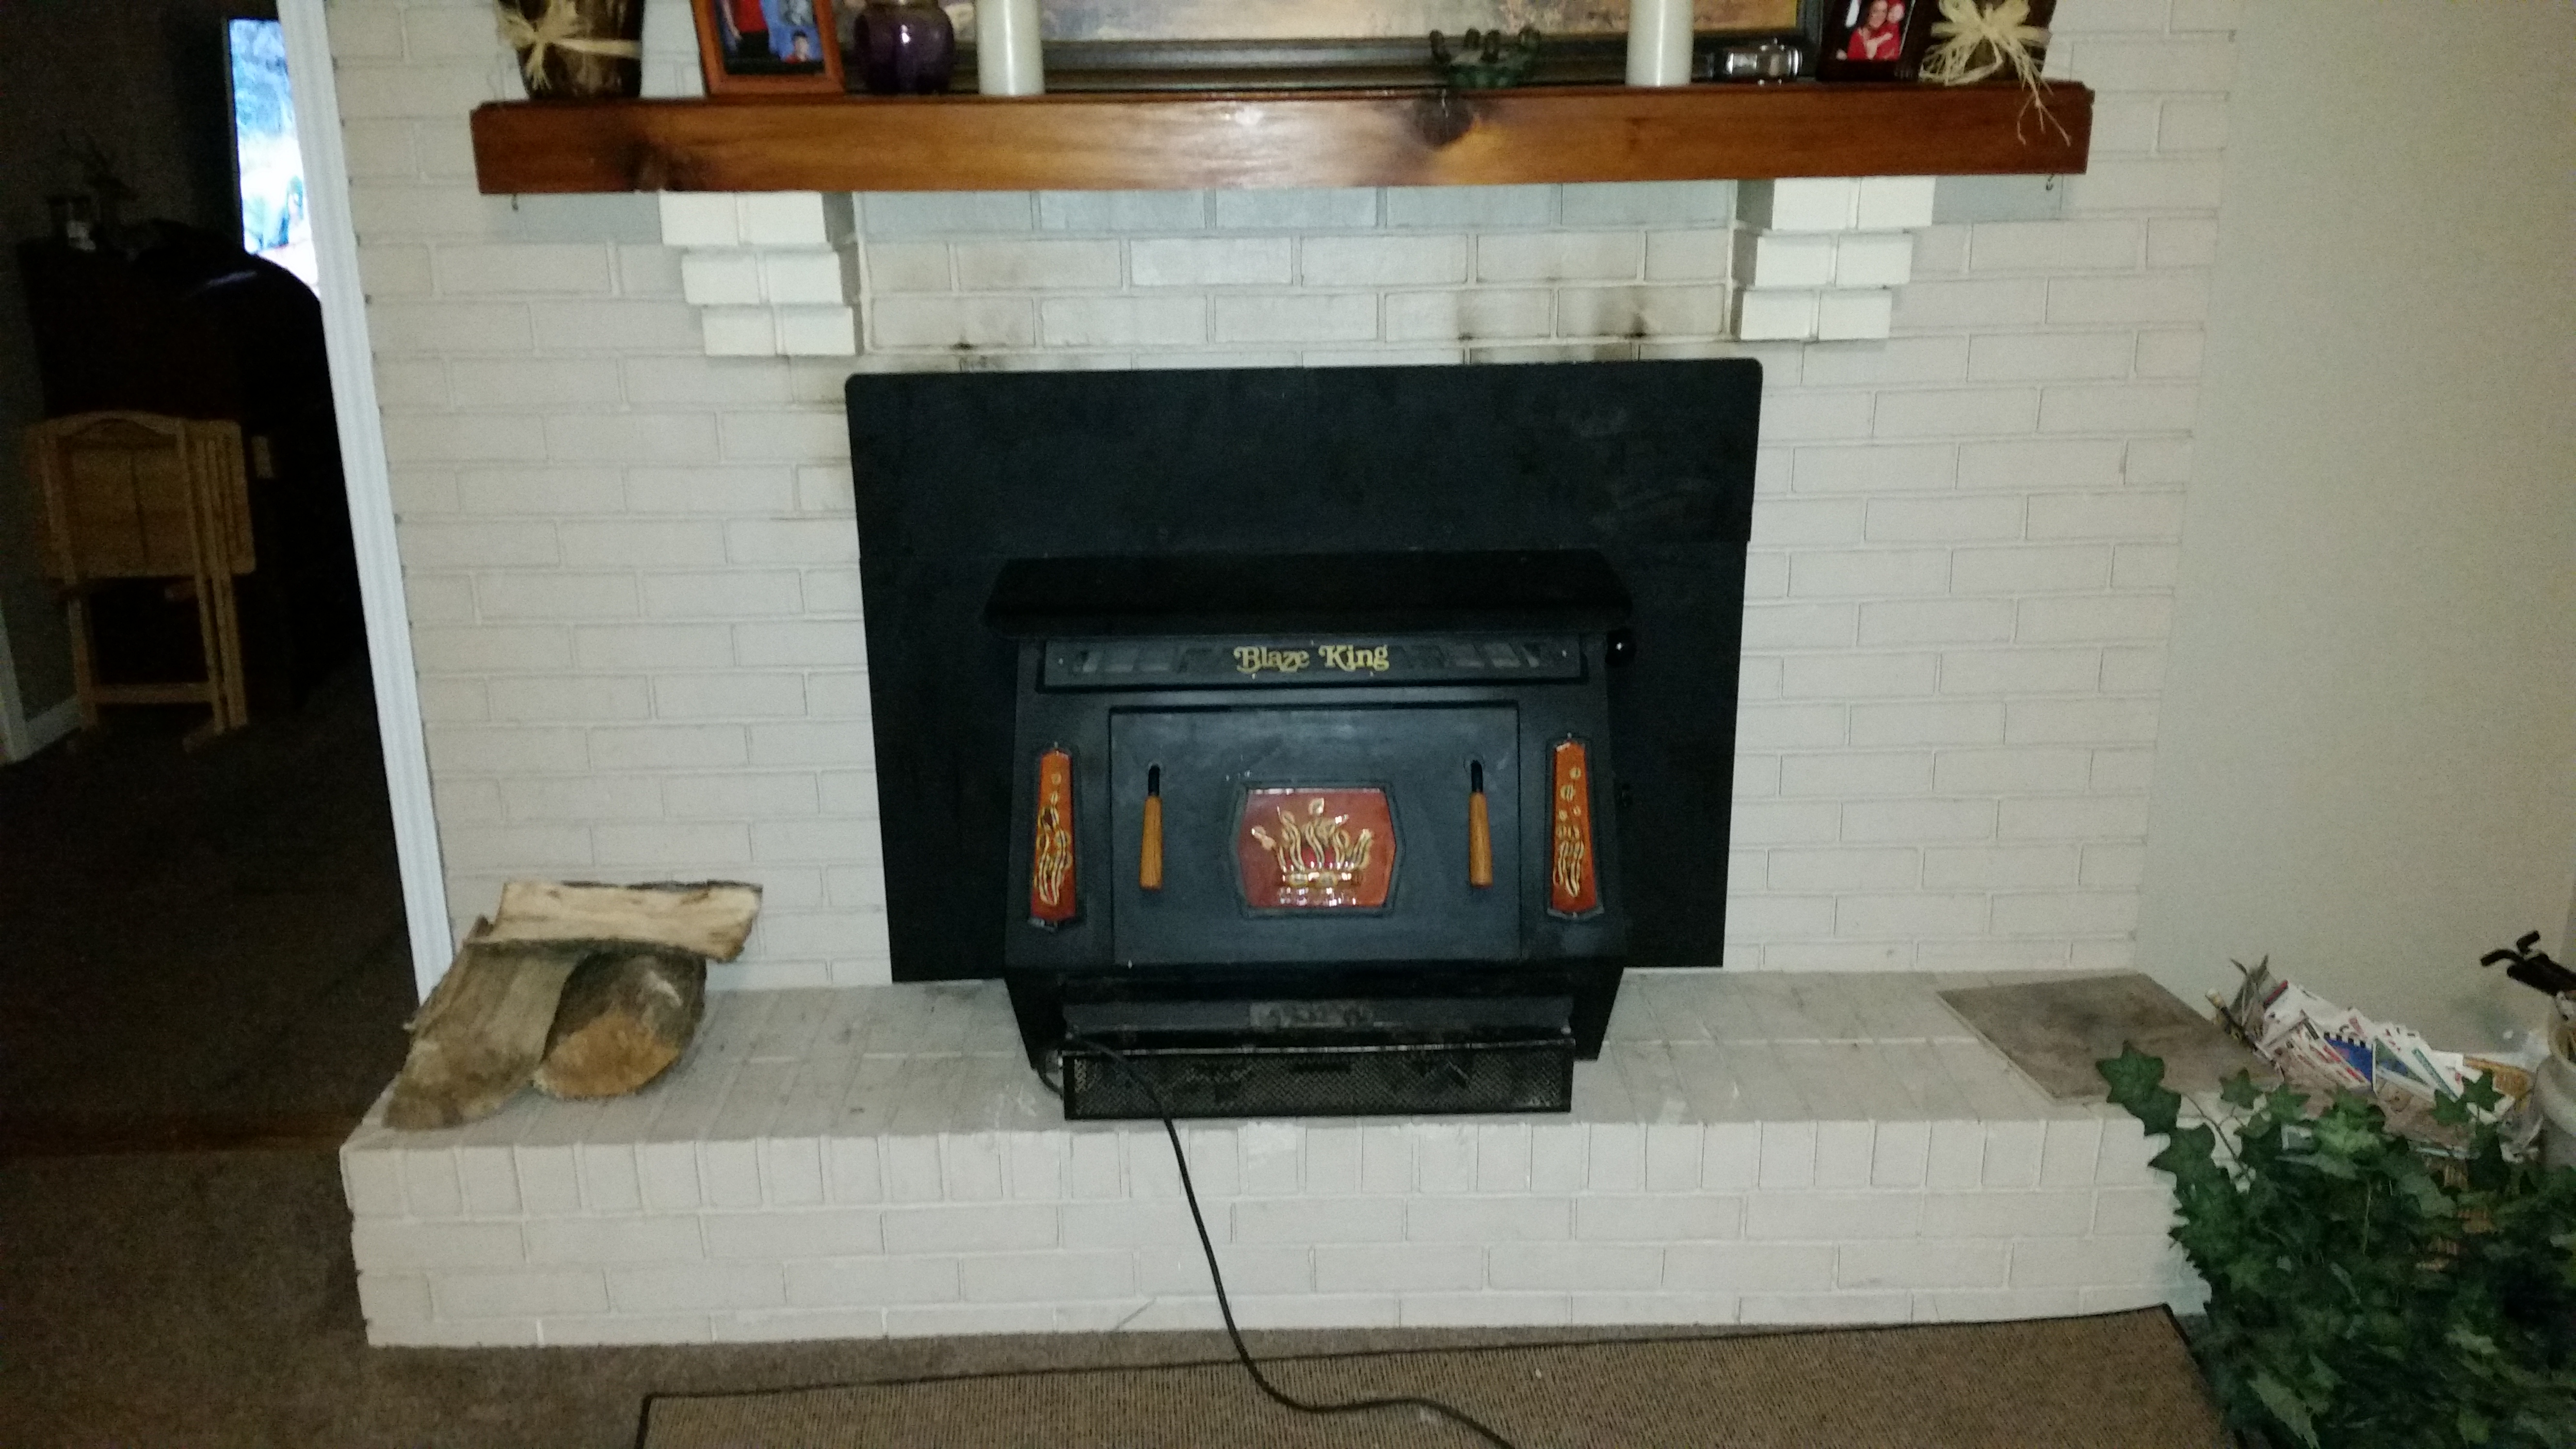 blaze king fireplace inserts.  Thumbnail for 20151101 202013 jpg Old Blaze King KFF 403 wood burning stoves forum at permies